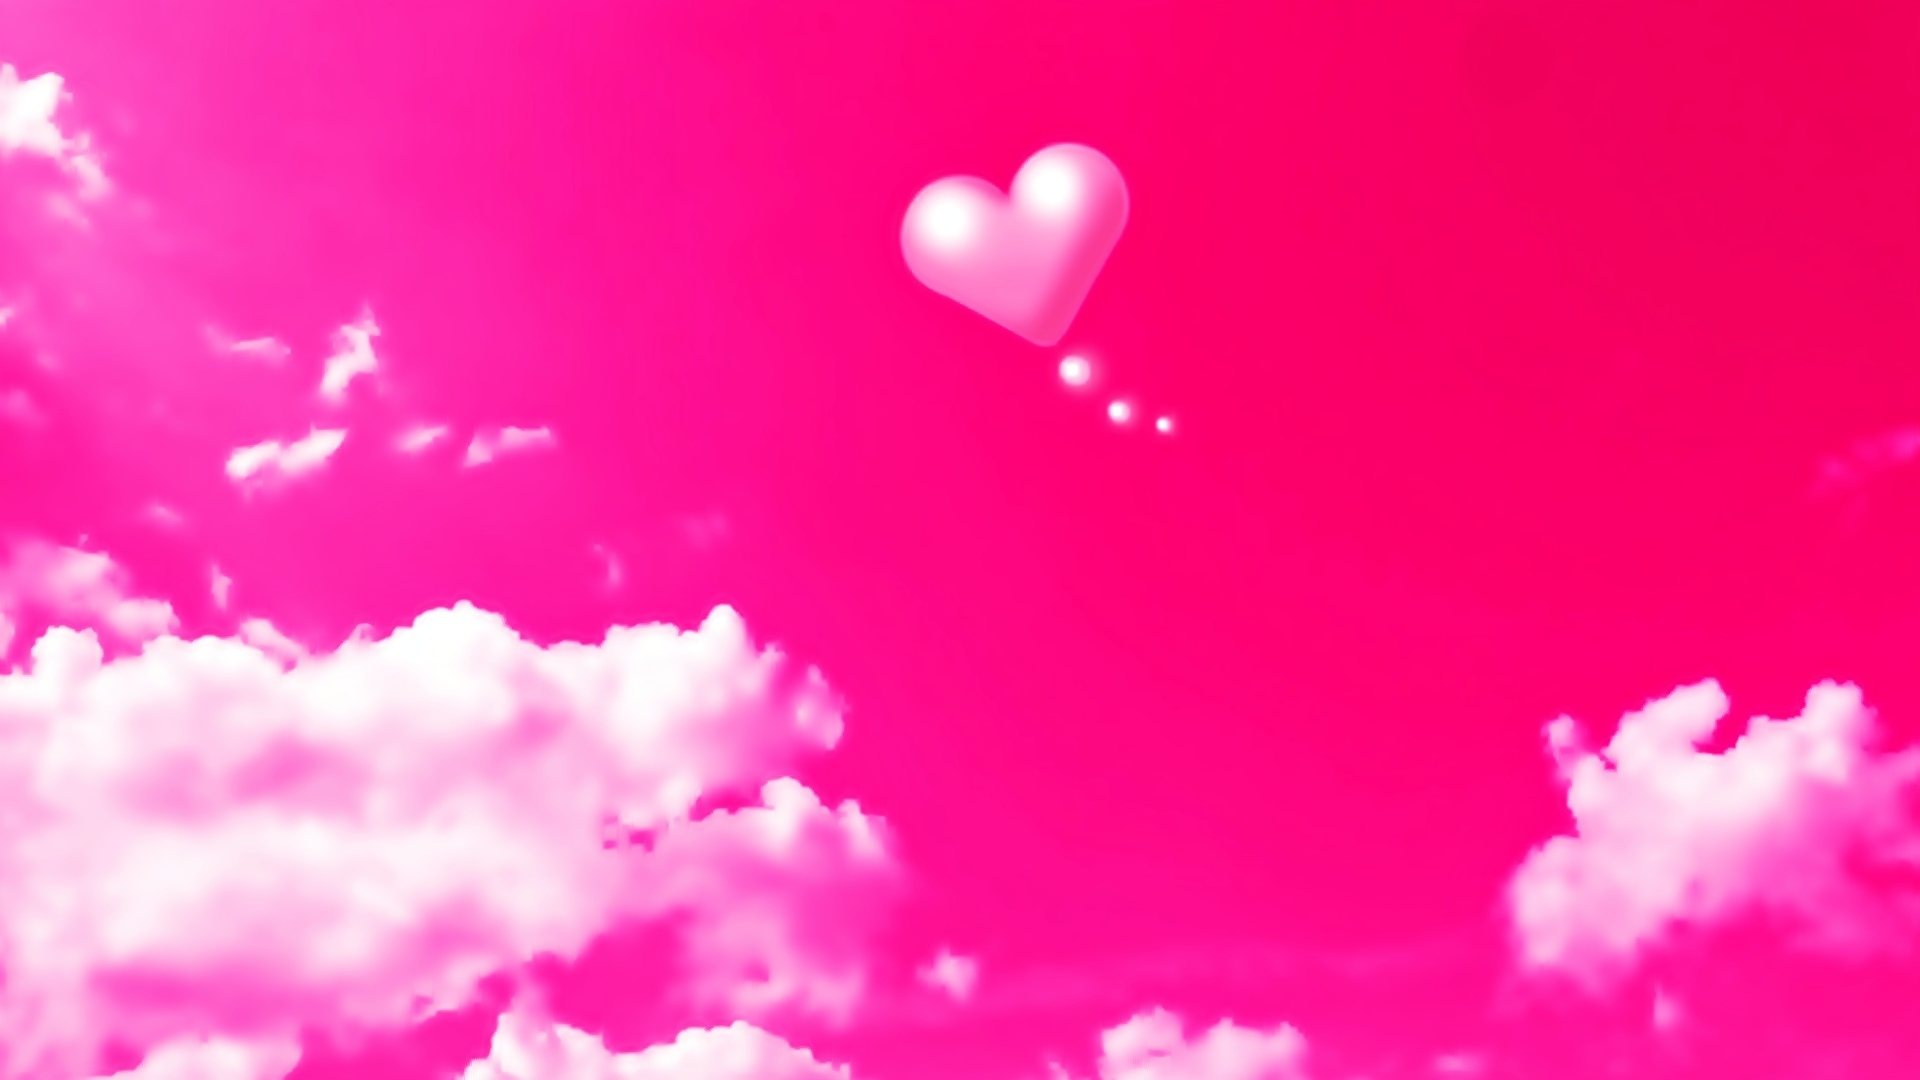 15 Pink Backgrounds PSD EPS JPEG PNG Format 1920x1080